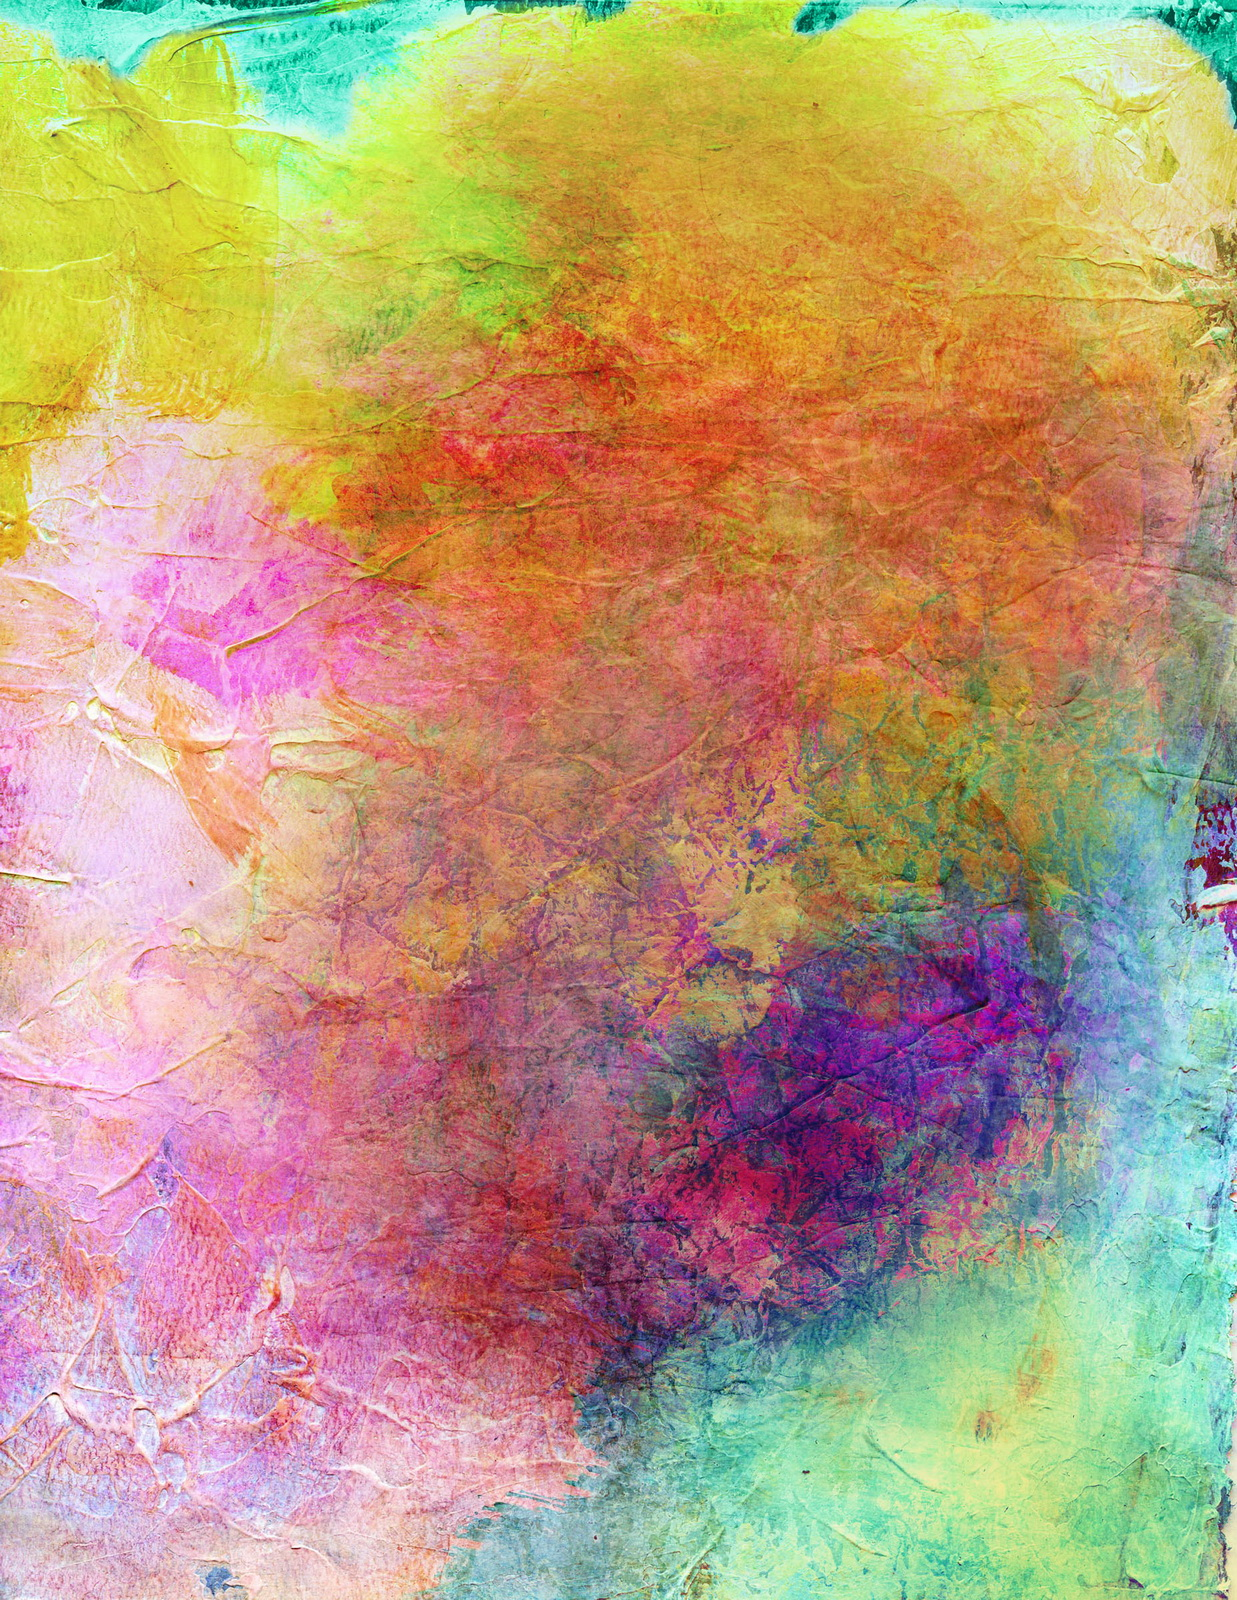 абстракция, abstraction, paint, texture paints, background, download photo, color paint texture background